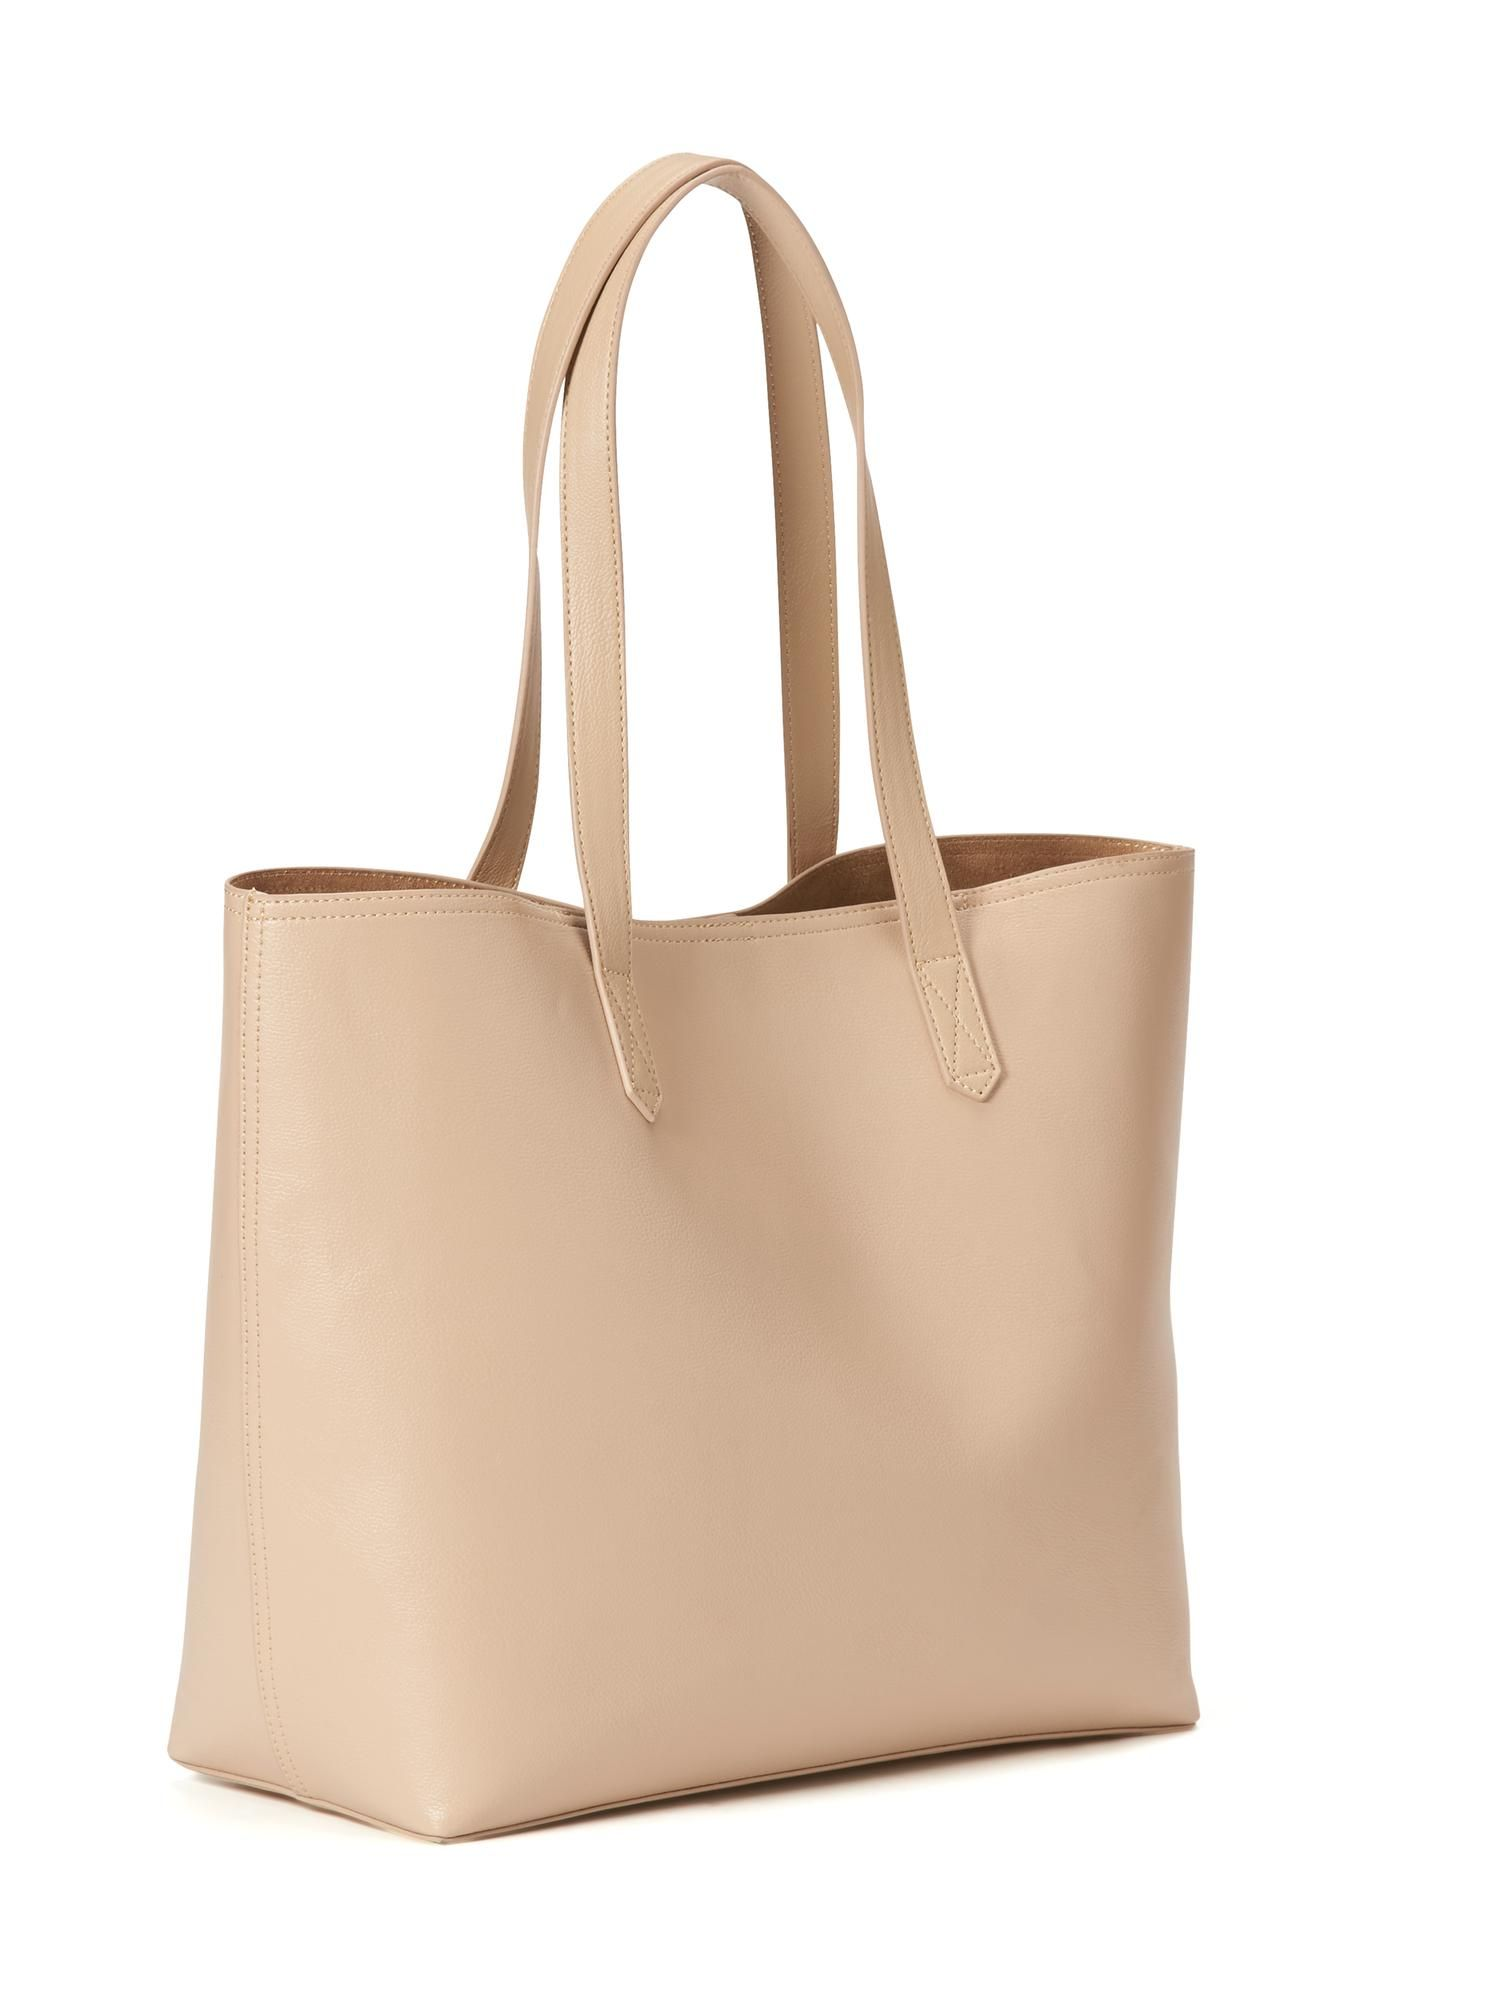 Old Navy Classic Faux Leather Tote 34 00 In 2019